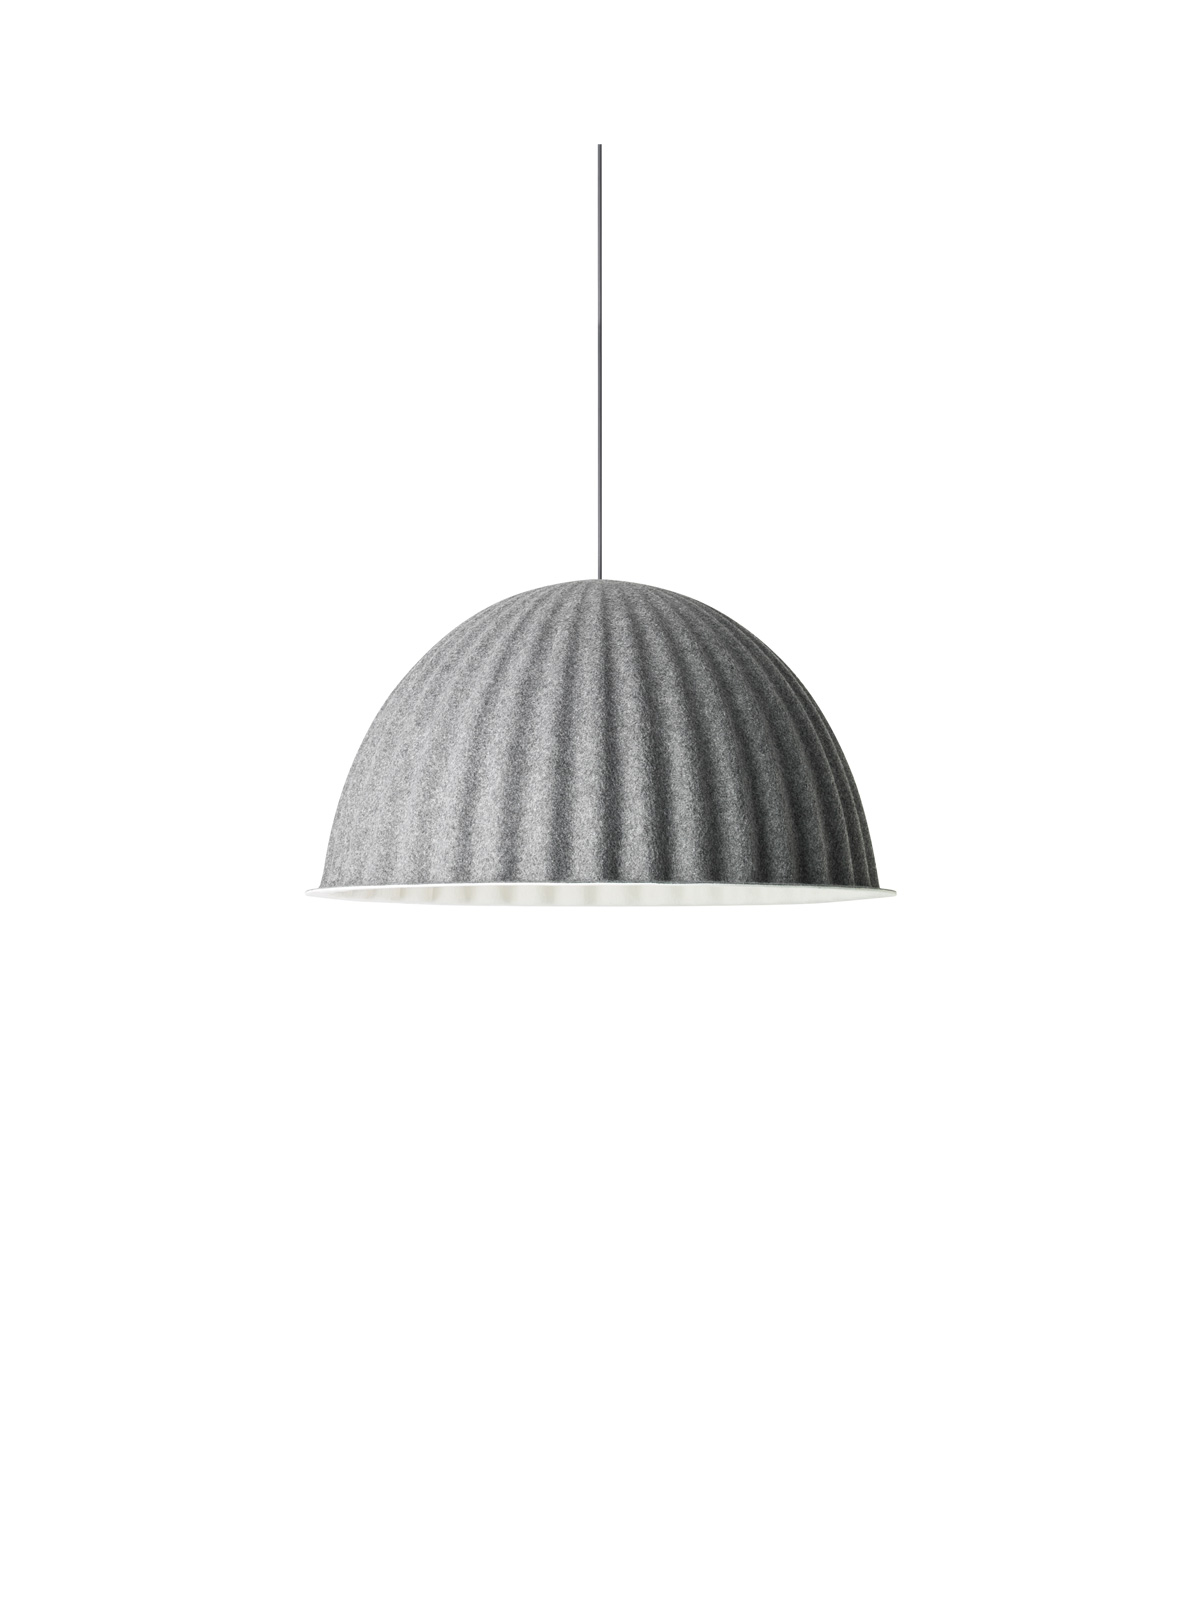 Pendelleuchte under the Bell von Muuto DesignOrt Berlin